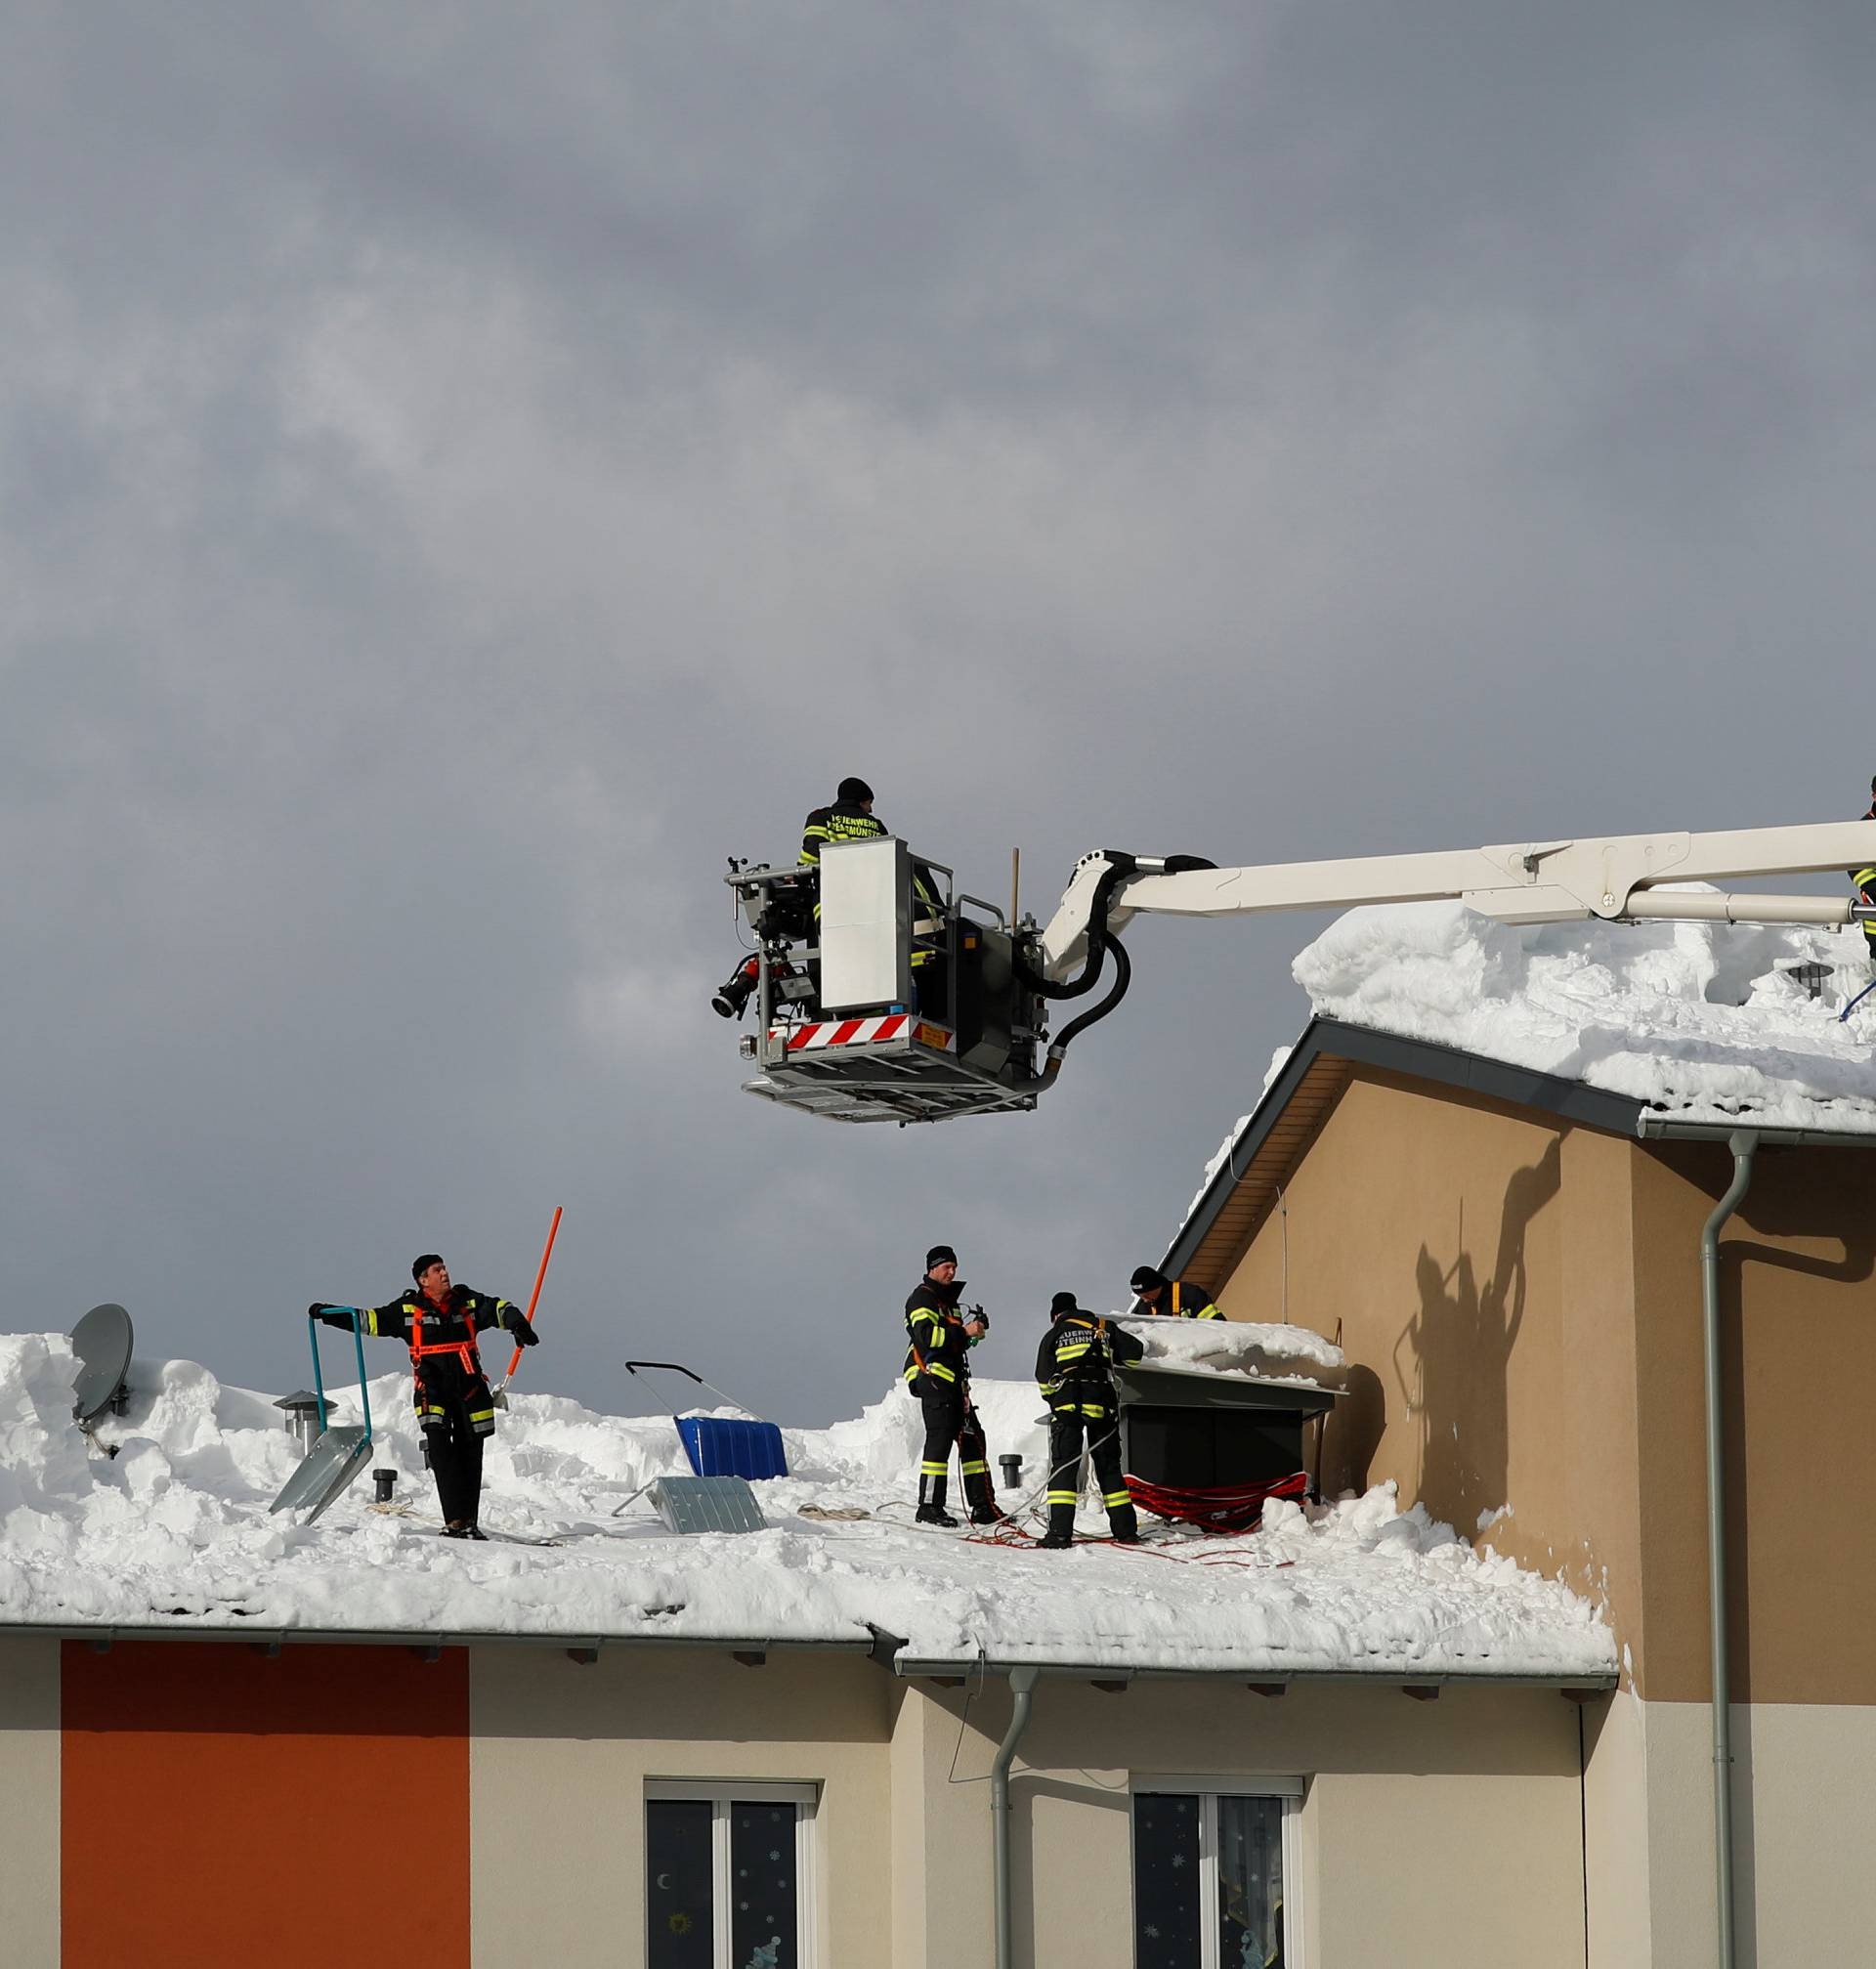 Members of the fire brigade shovel snow on a rooftop after heavy snowfall in Rosenau